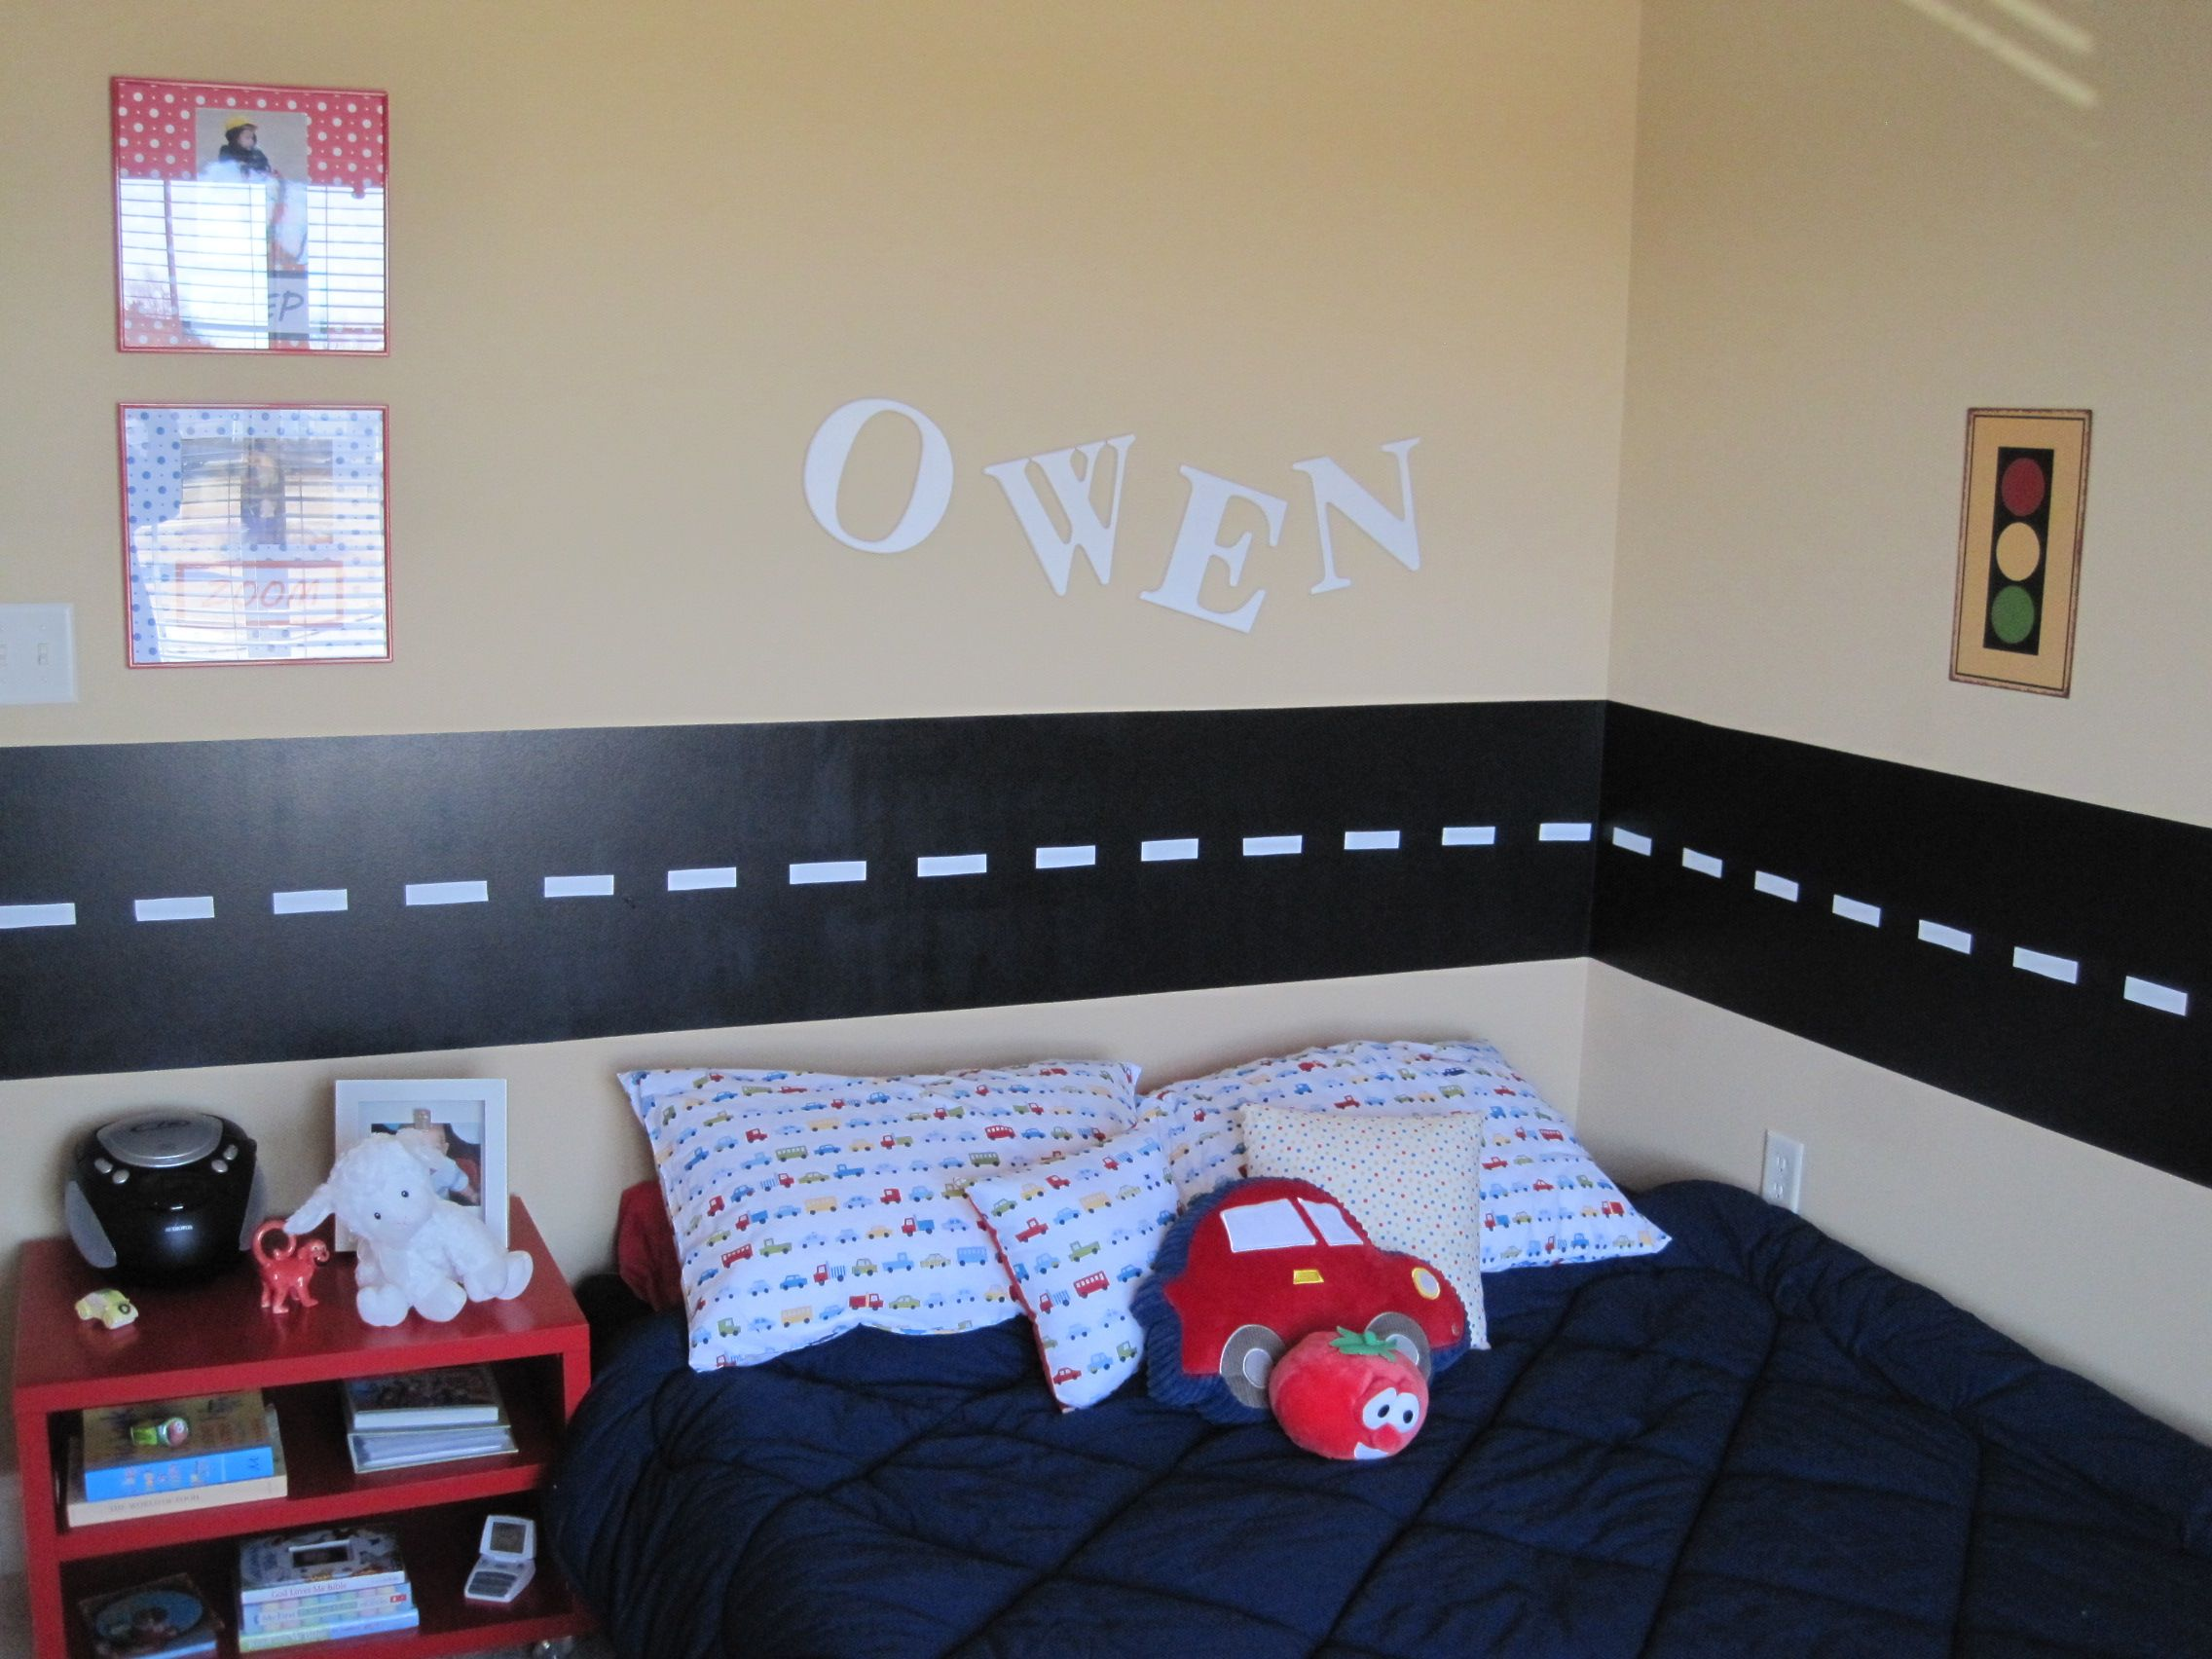 Boys bedroom ideas for small rooms - 17 Best Ideas About Race Car Room On Pinterest Boys Car Bedroom Race Car Bedroom And Car Room